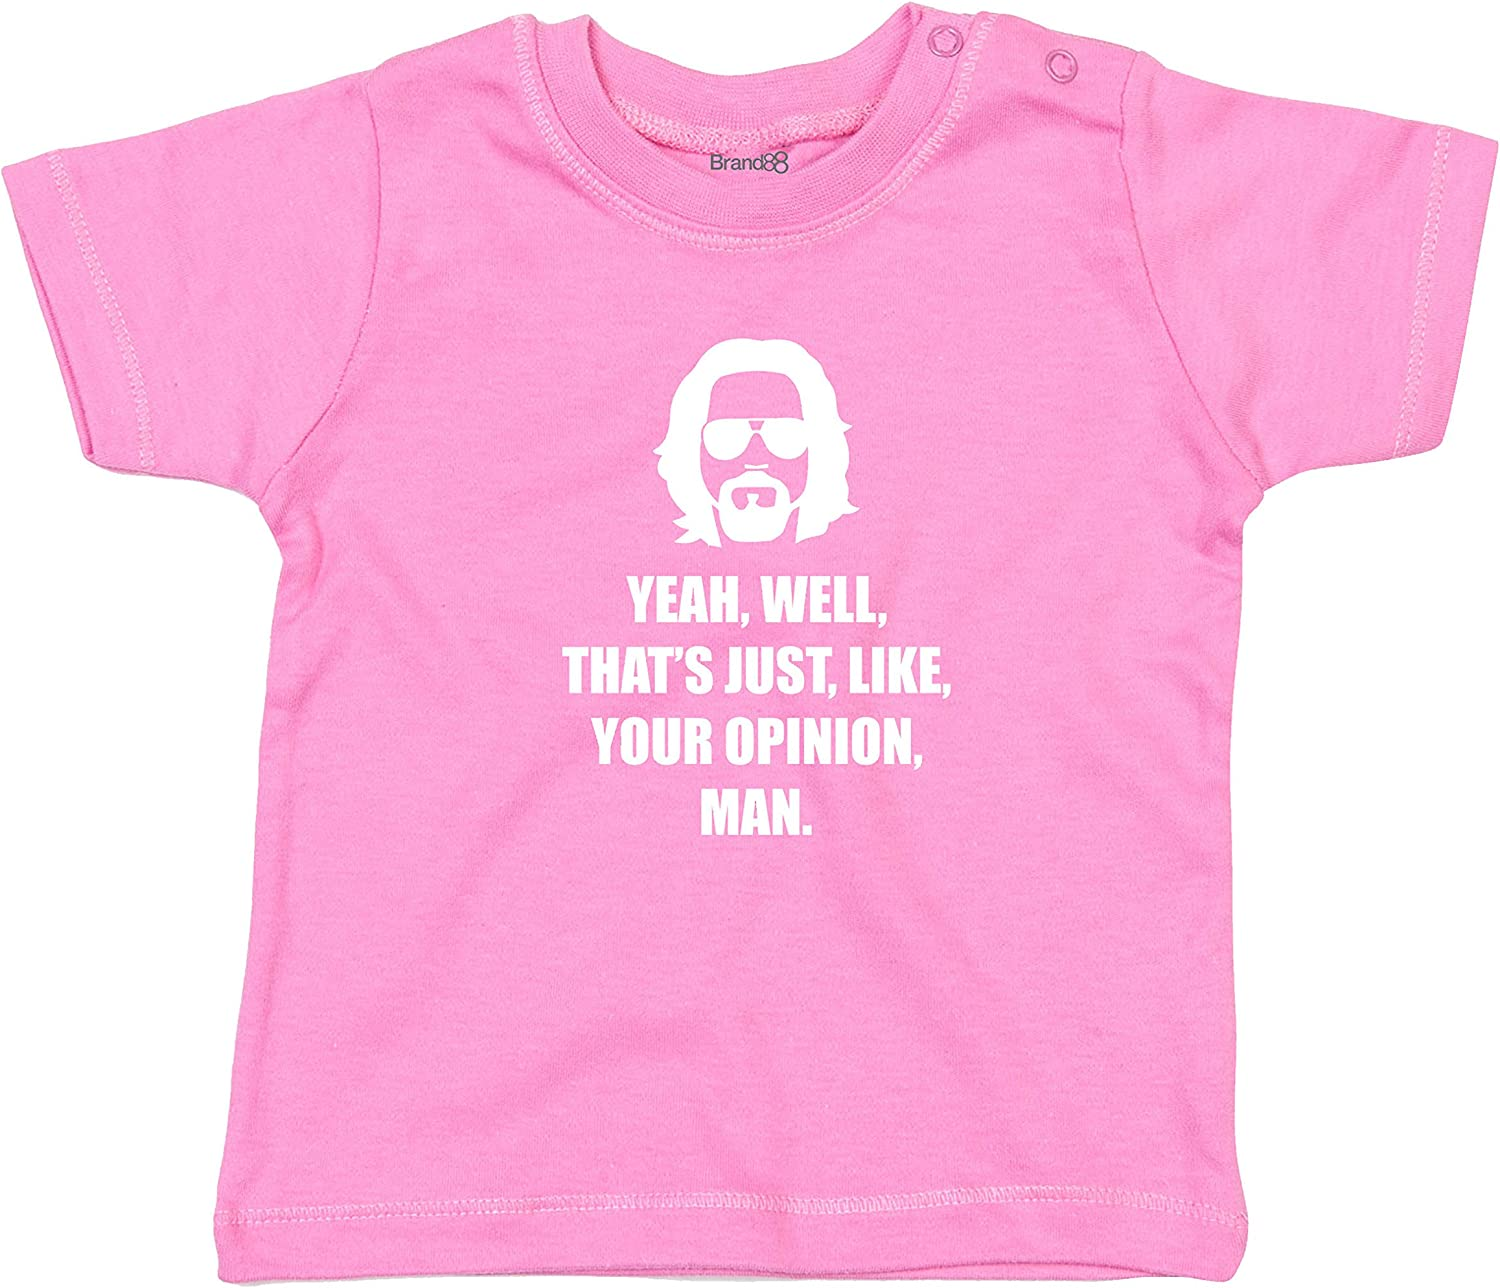 Baby T-Shirt Brand88 Man Your Opinion